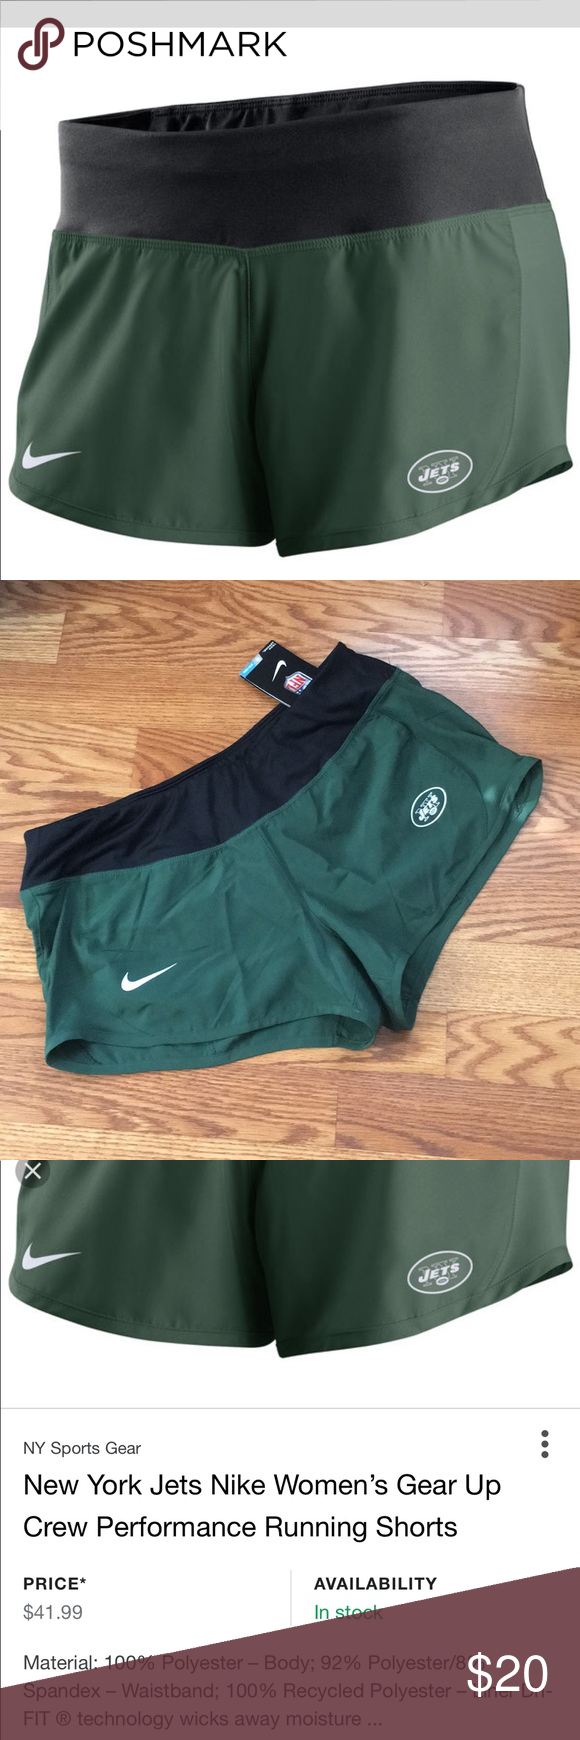 78a4e990 🏈 NWT Nike Dri Fit NY jets Shorts New with Tags. Nike Official NFL ...